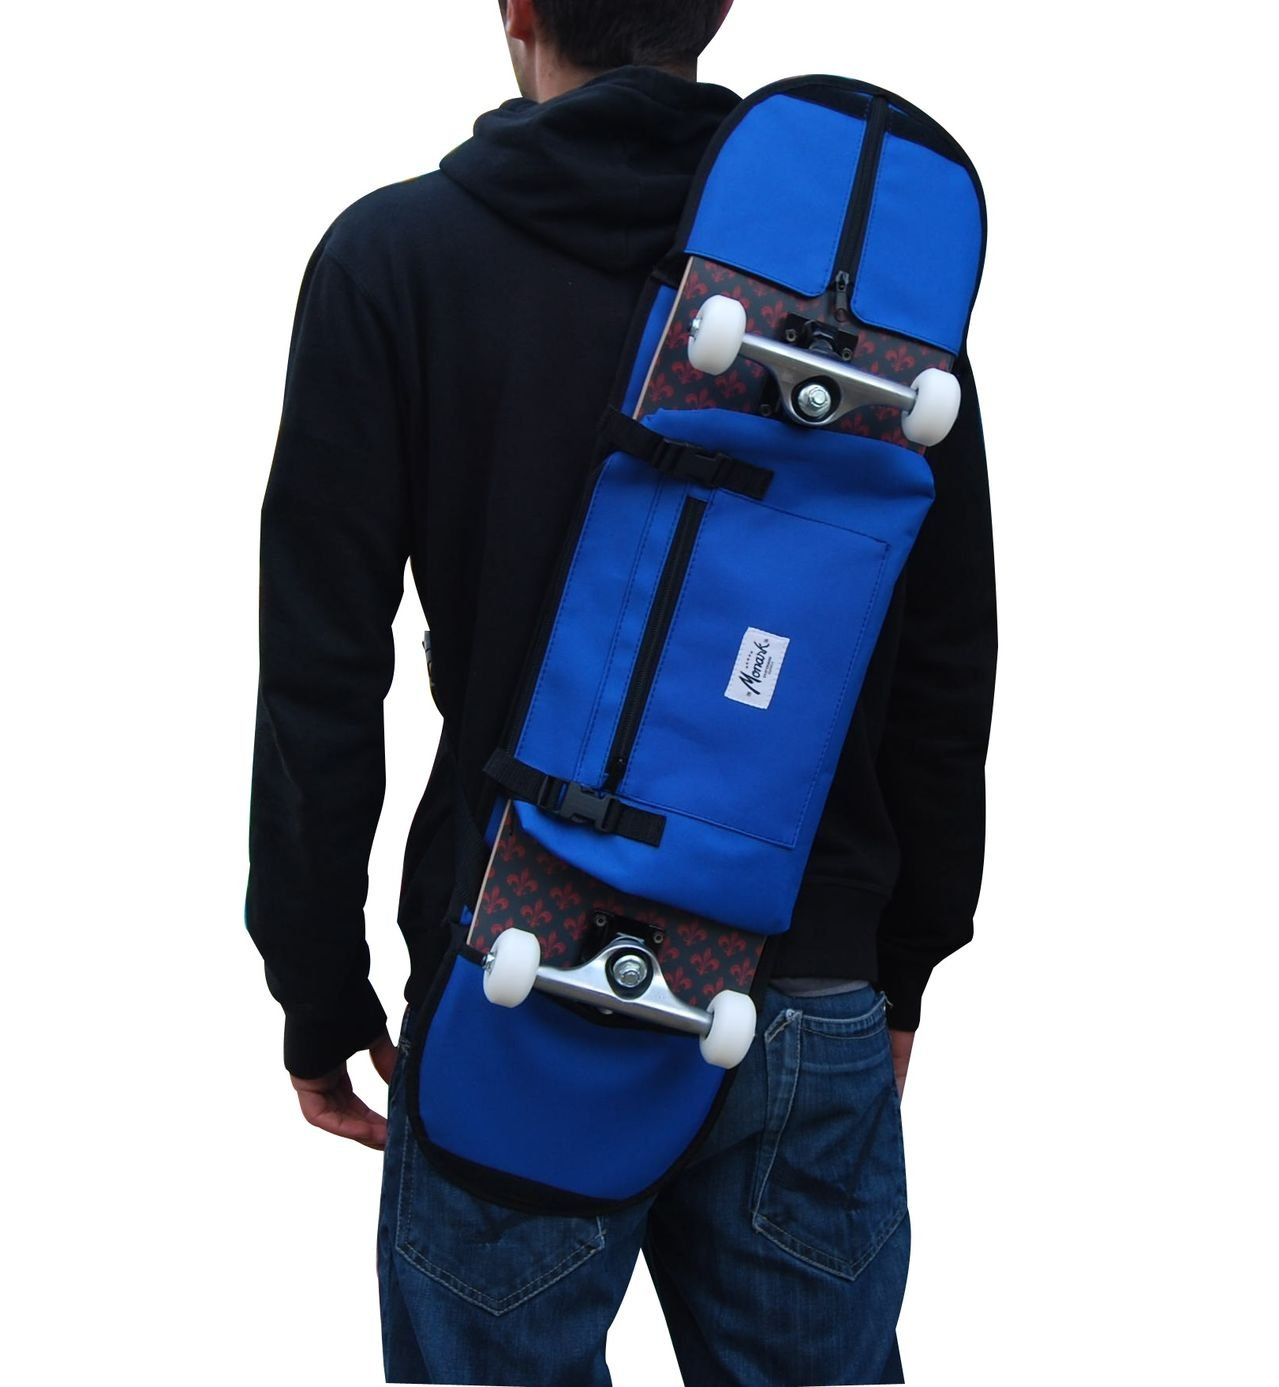 Skateboard Case Backpack Carrying Bag 7, 5-8, 5 Inches Skateboarding. Blue 5-8 Monark Supply